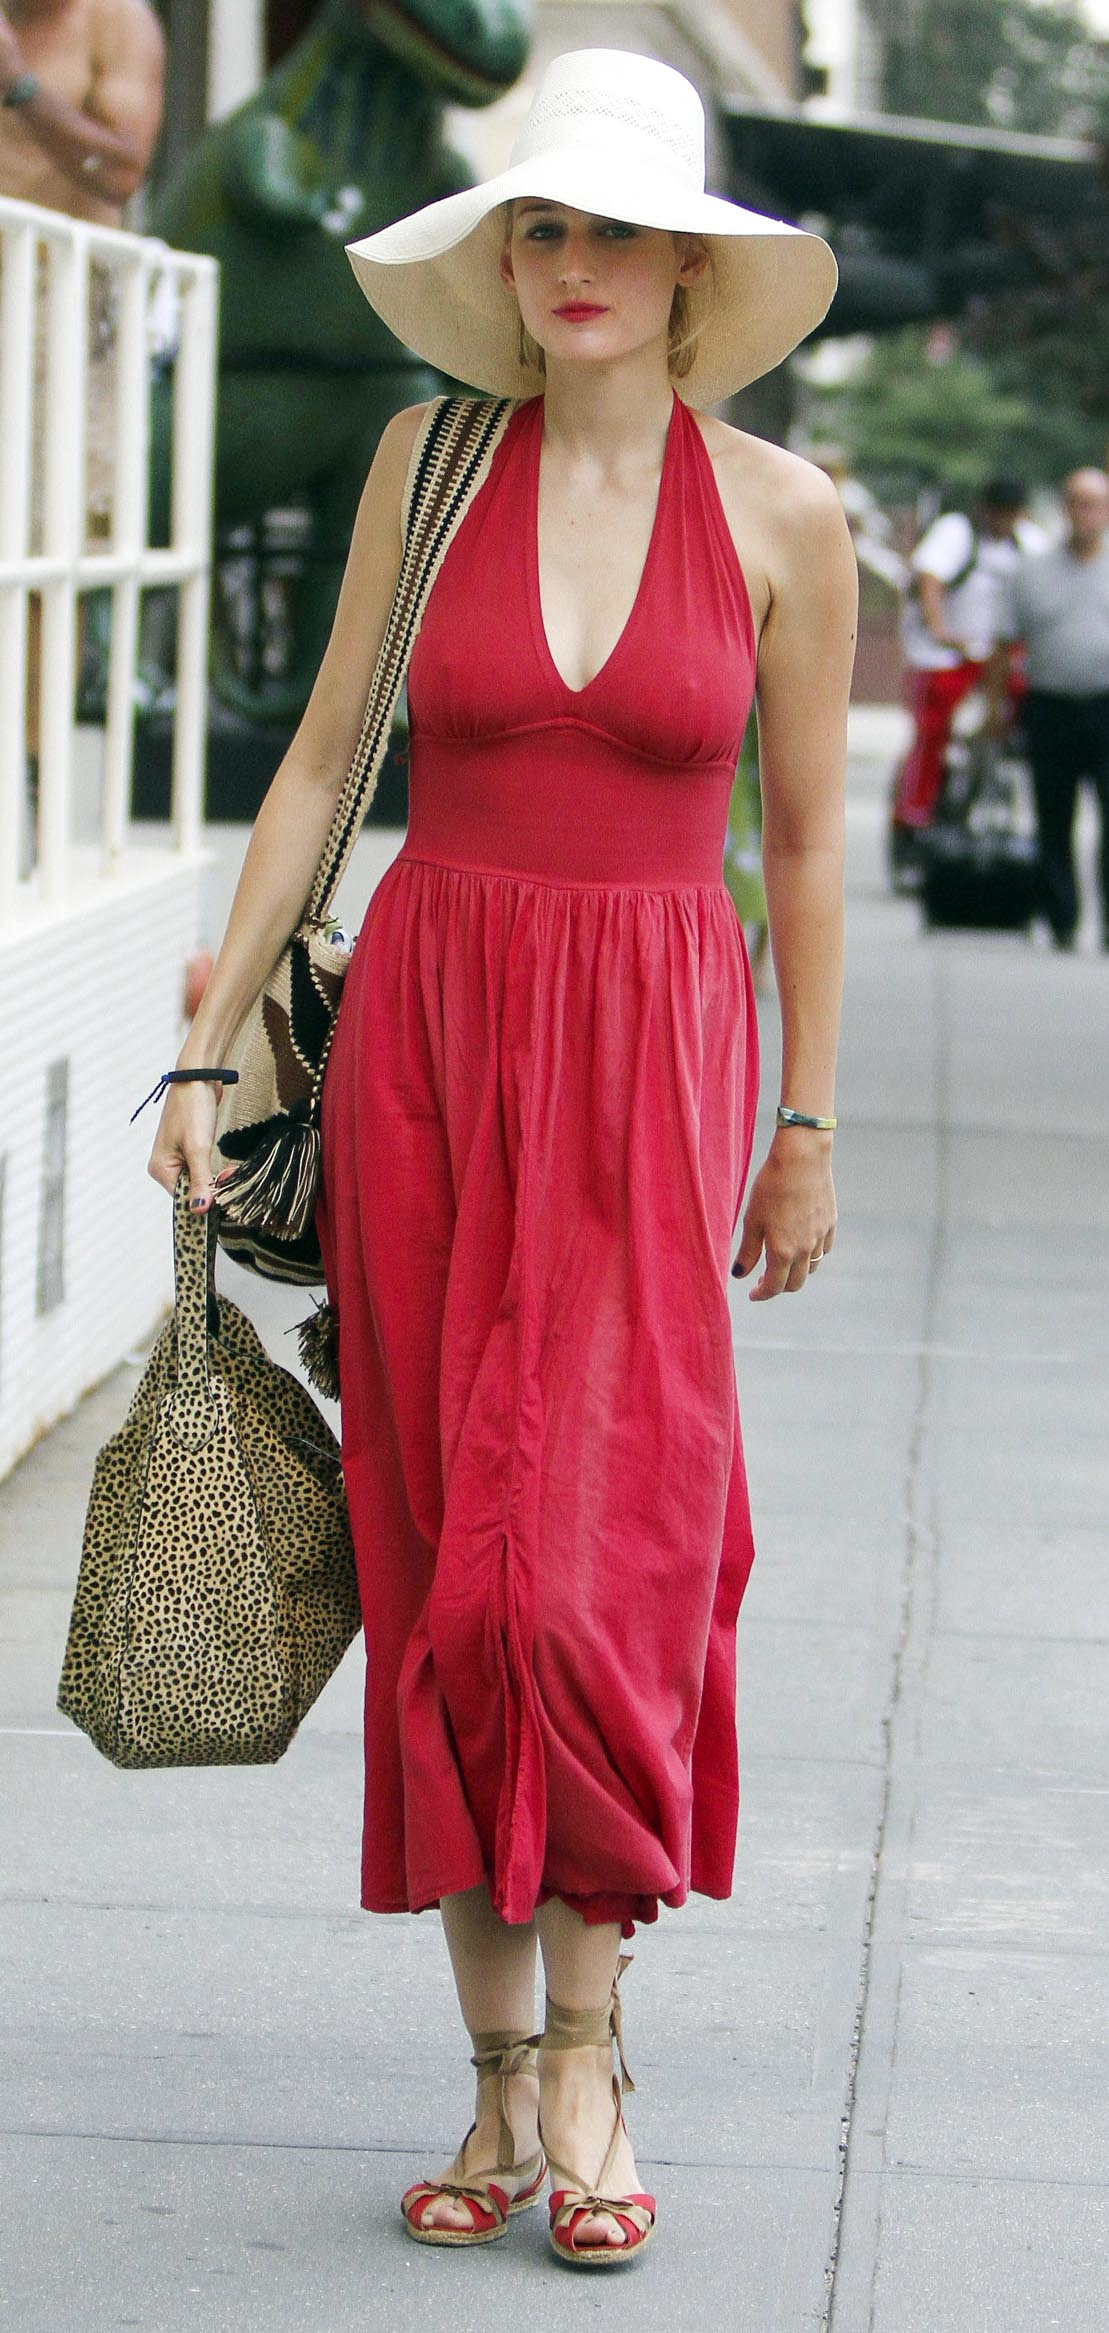 Leelee Sobieski Hot In A Long Red Dress Tribeca Gotceleb